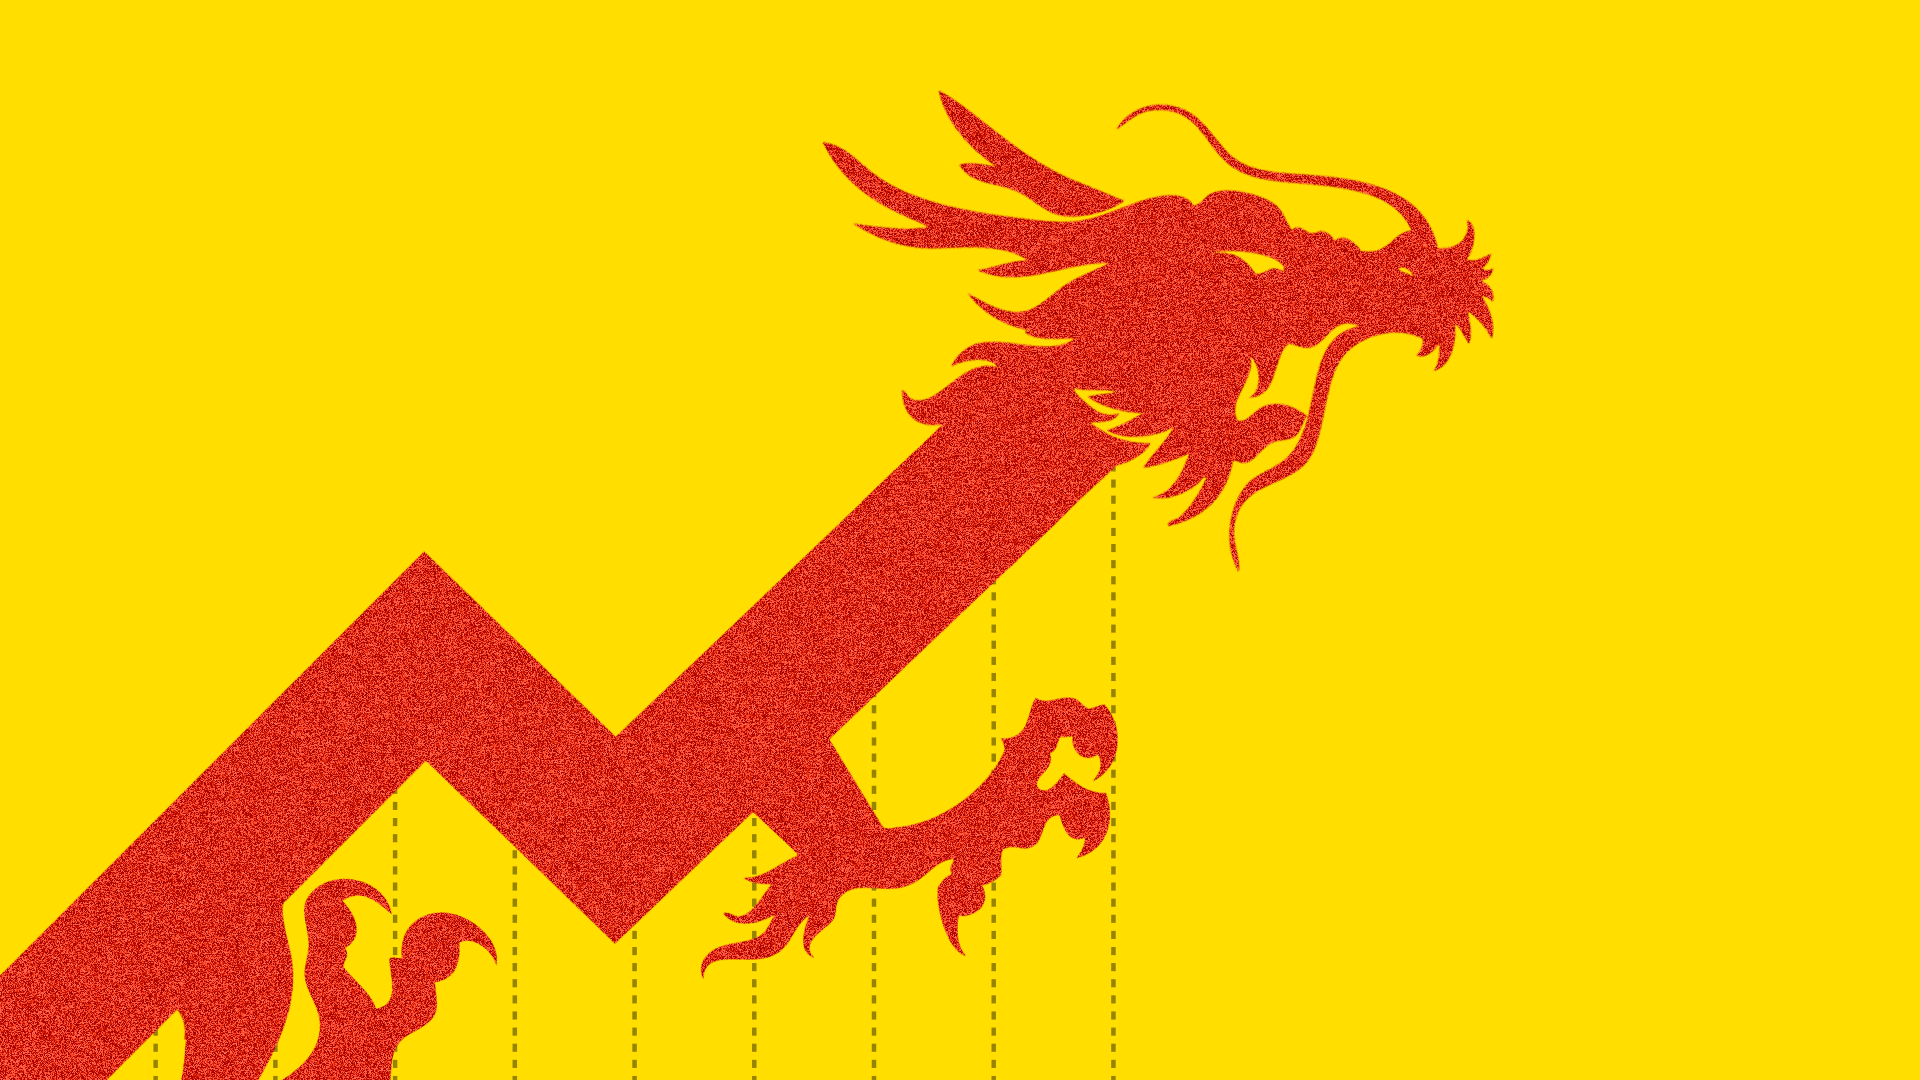 This illustration shows a red dragon drawn like a rising stock line.